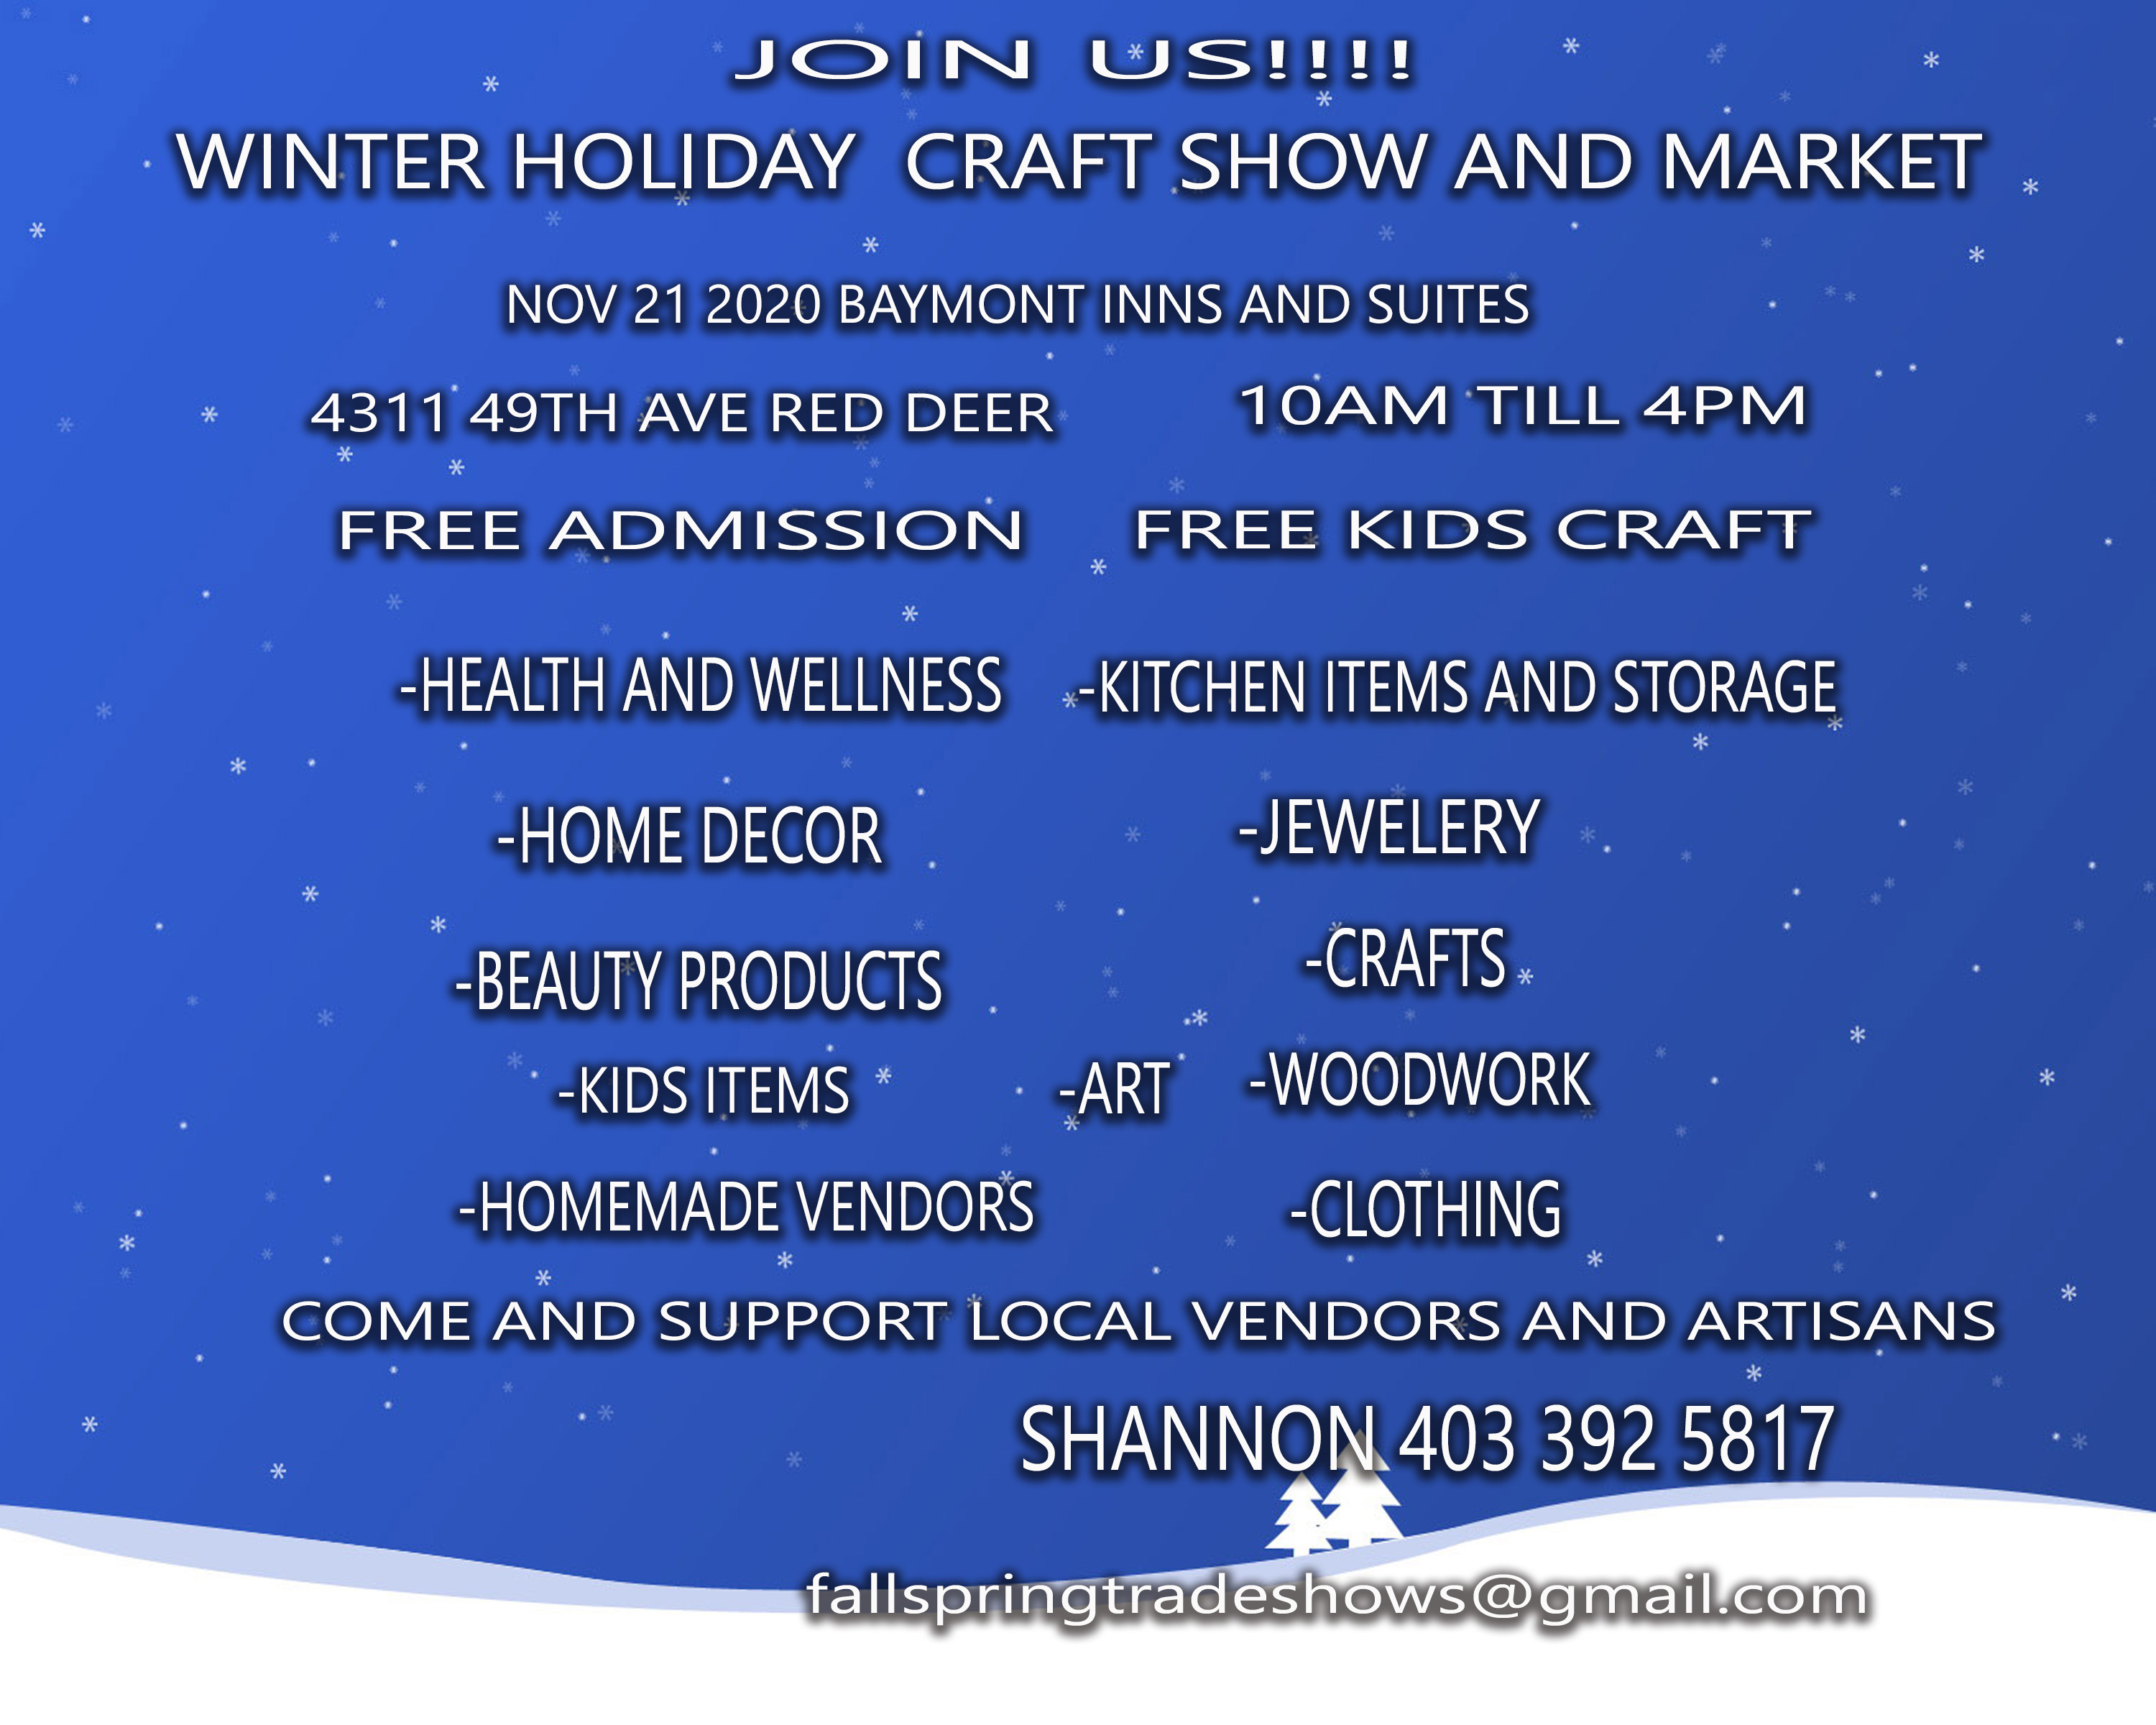 Winter Holiday Craft Show and Market